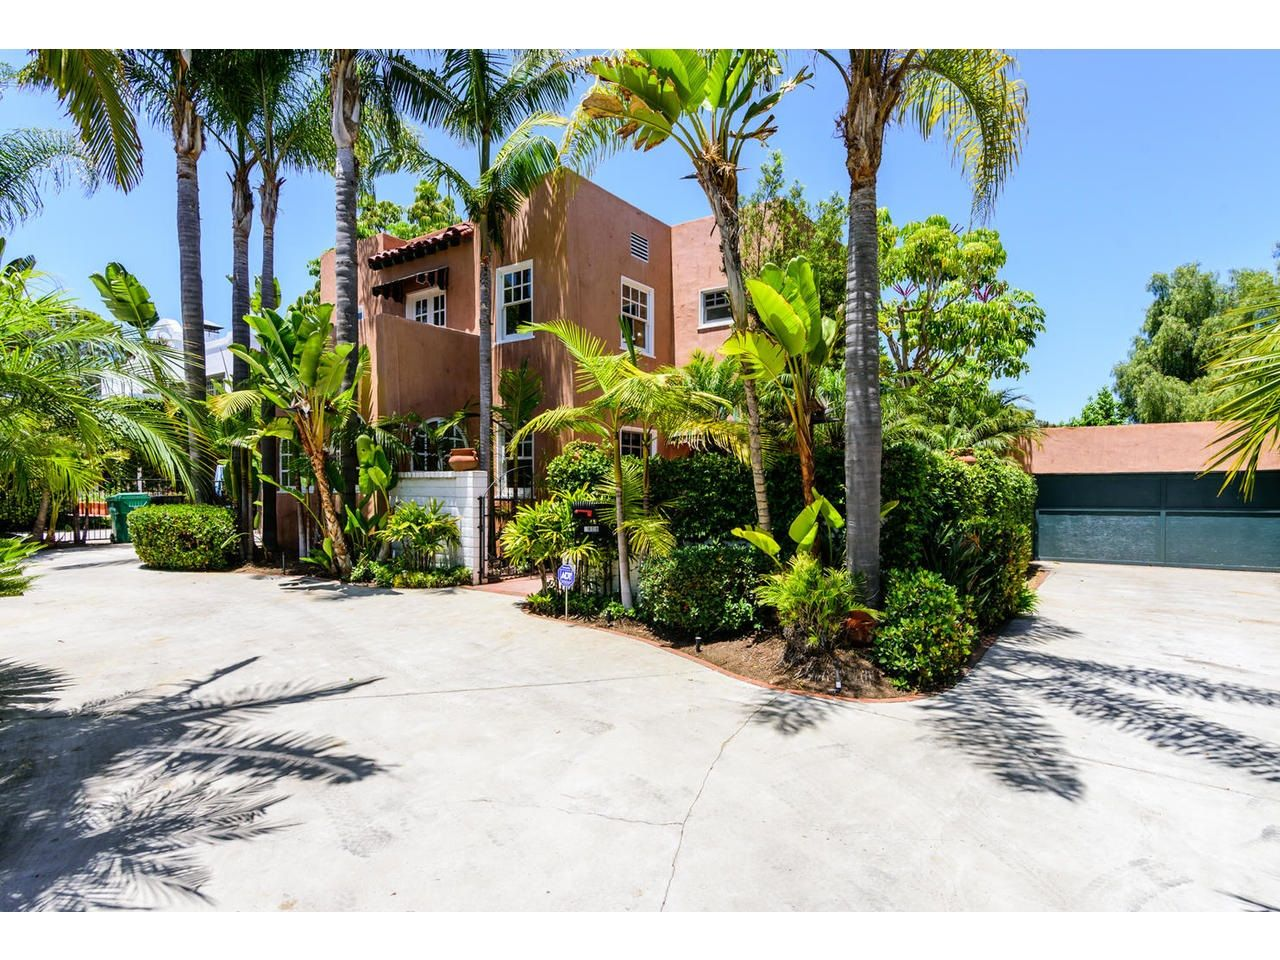 FEATURED LISTING: 2808 Chatsworth Blvd San Diego